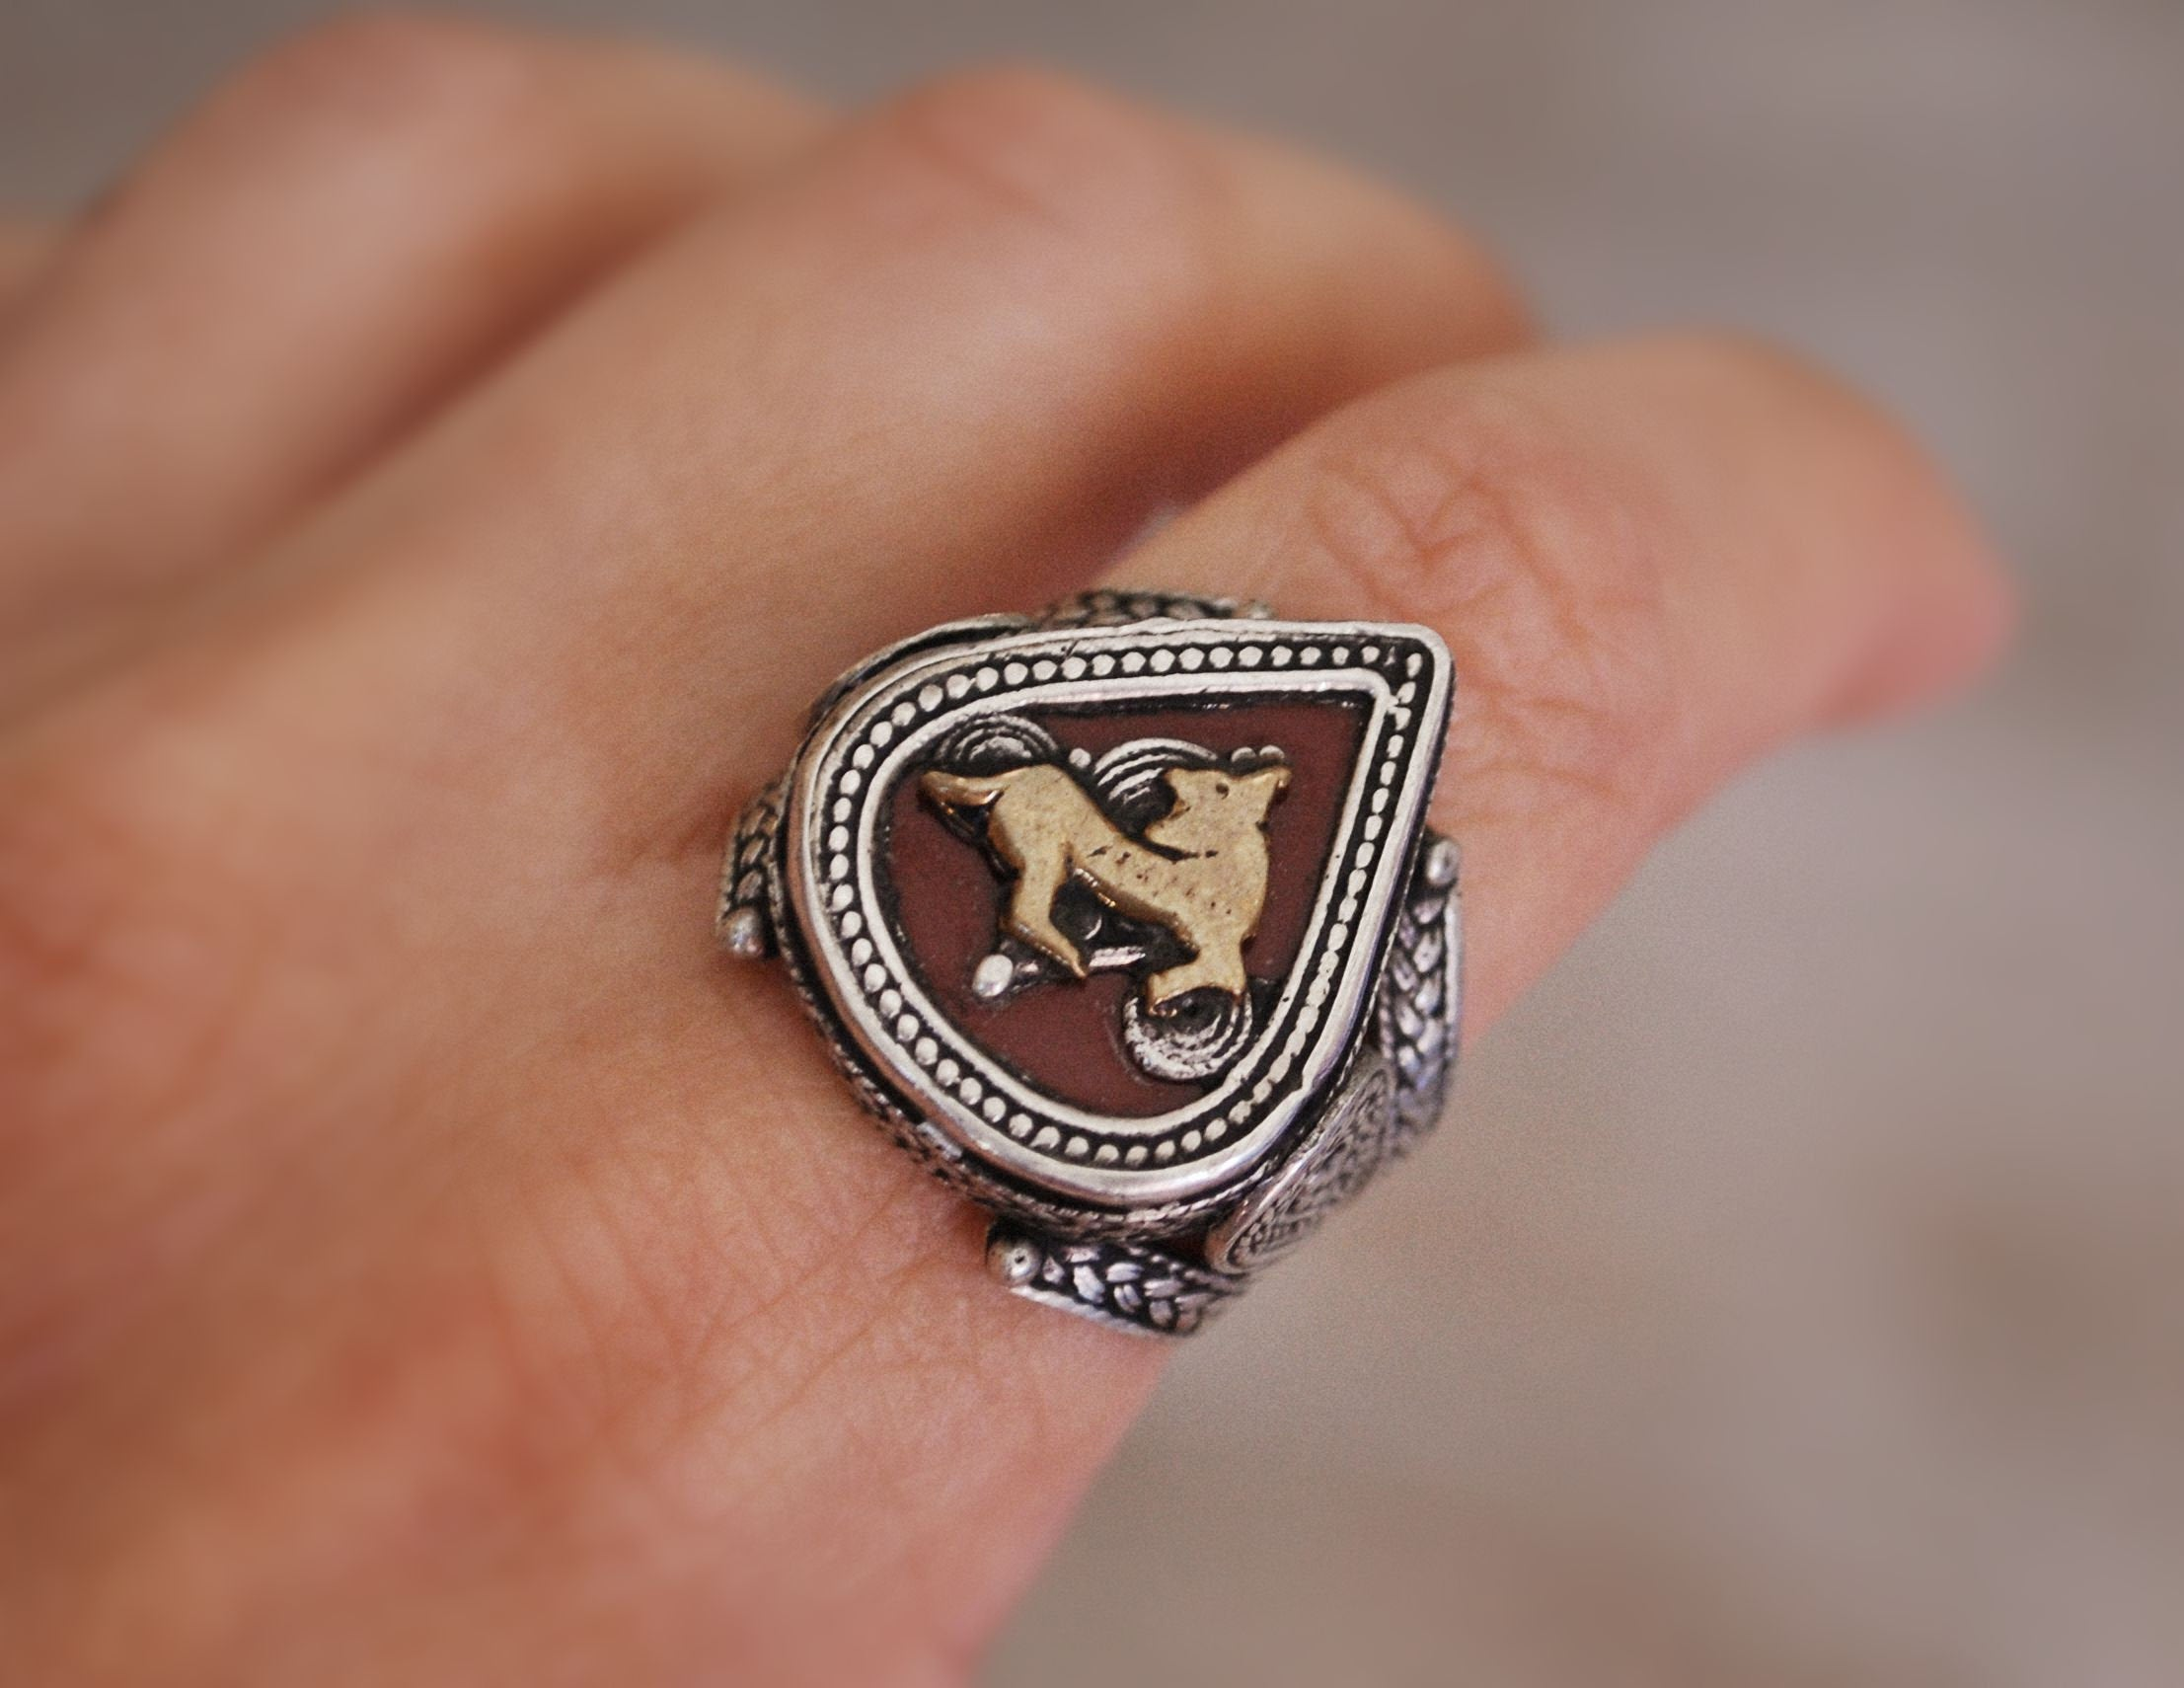 Tribal Kazakh Silver Ring - Size 8.5 - Central Asia Ethnic Tribal Ring - Ring from Kazakhstan - Tribal Silver Ring - Kazakh Jewelry